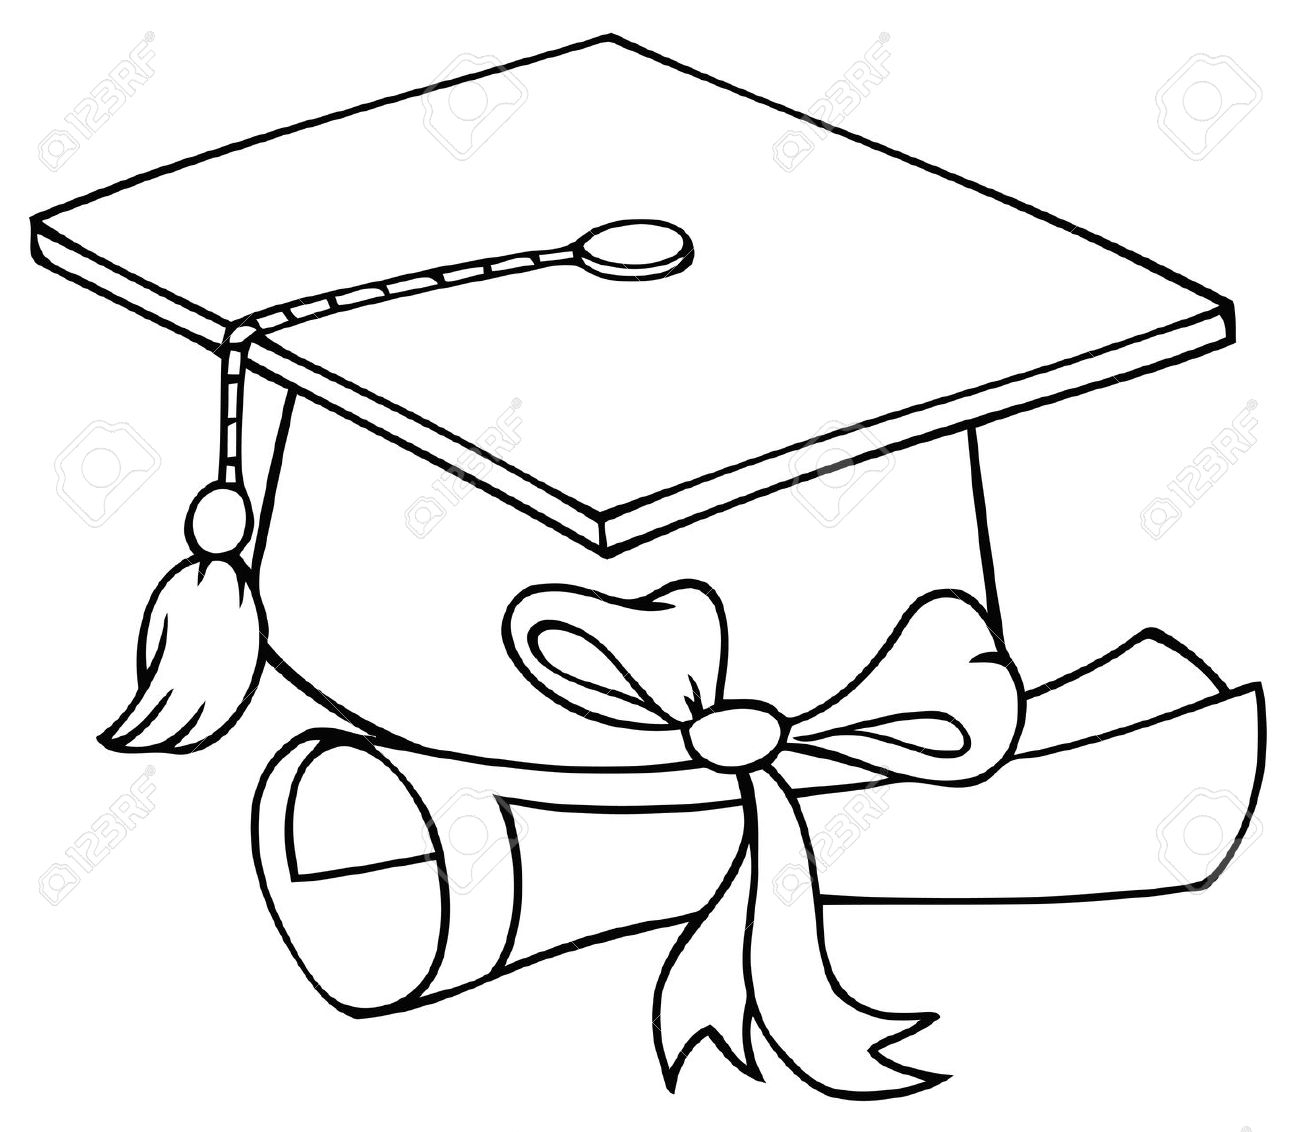 Cap clipart drawing. A graduation diploma pencil